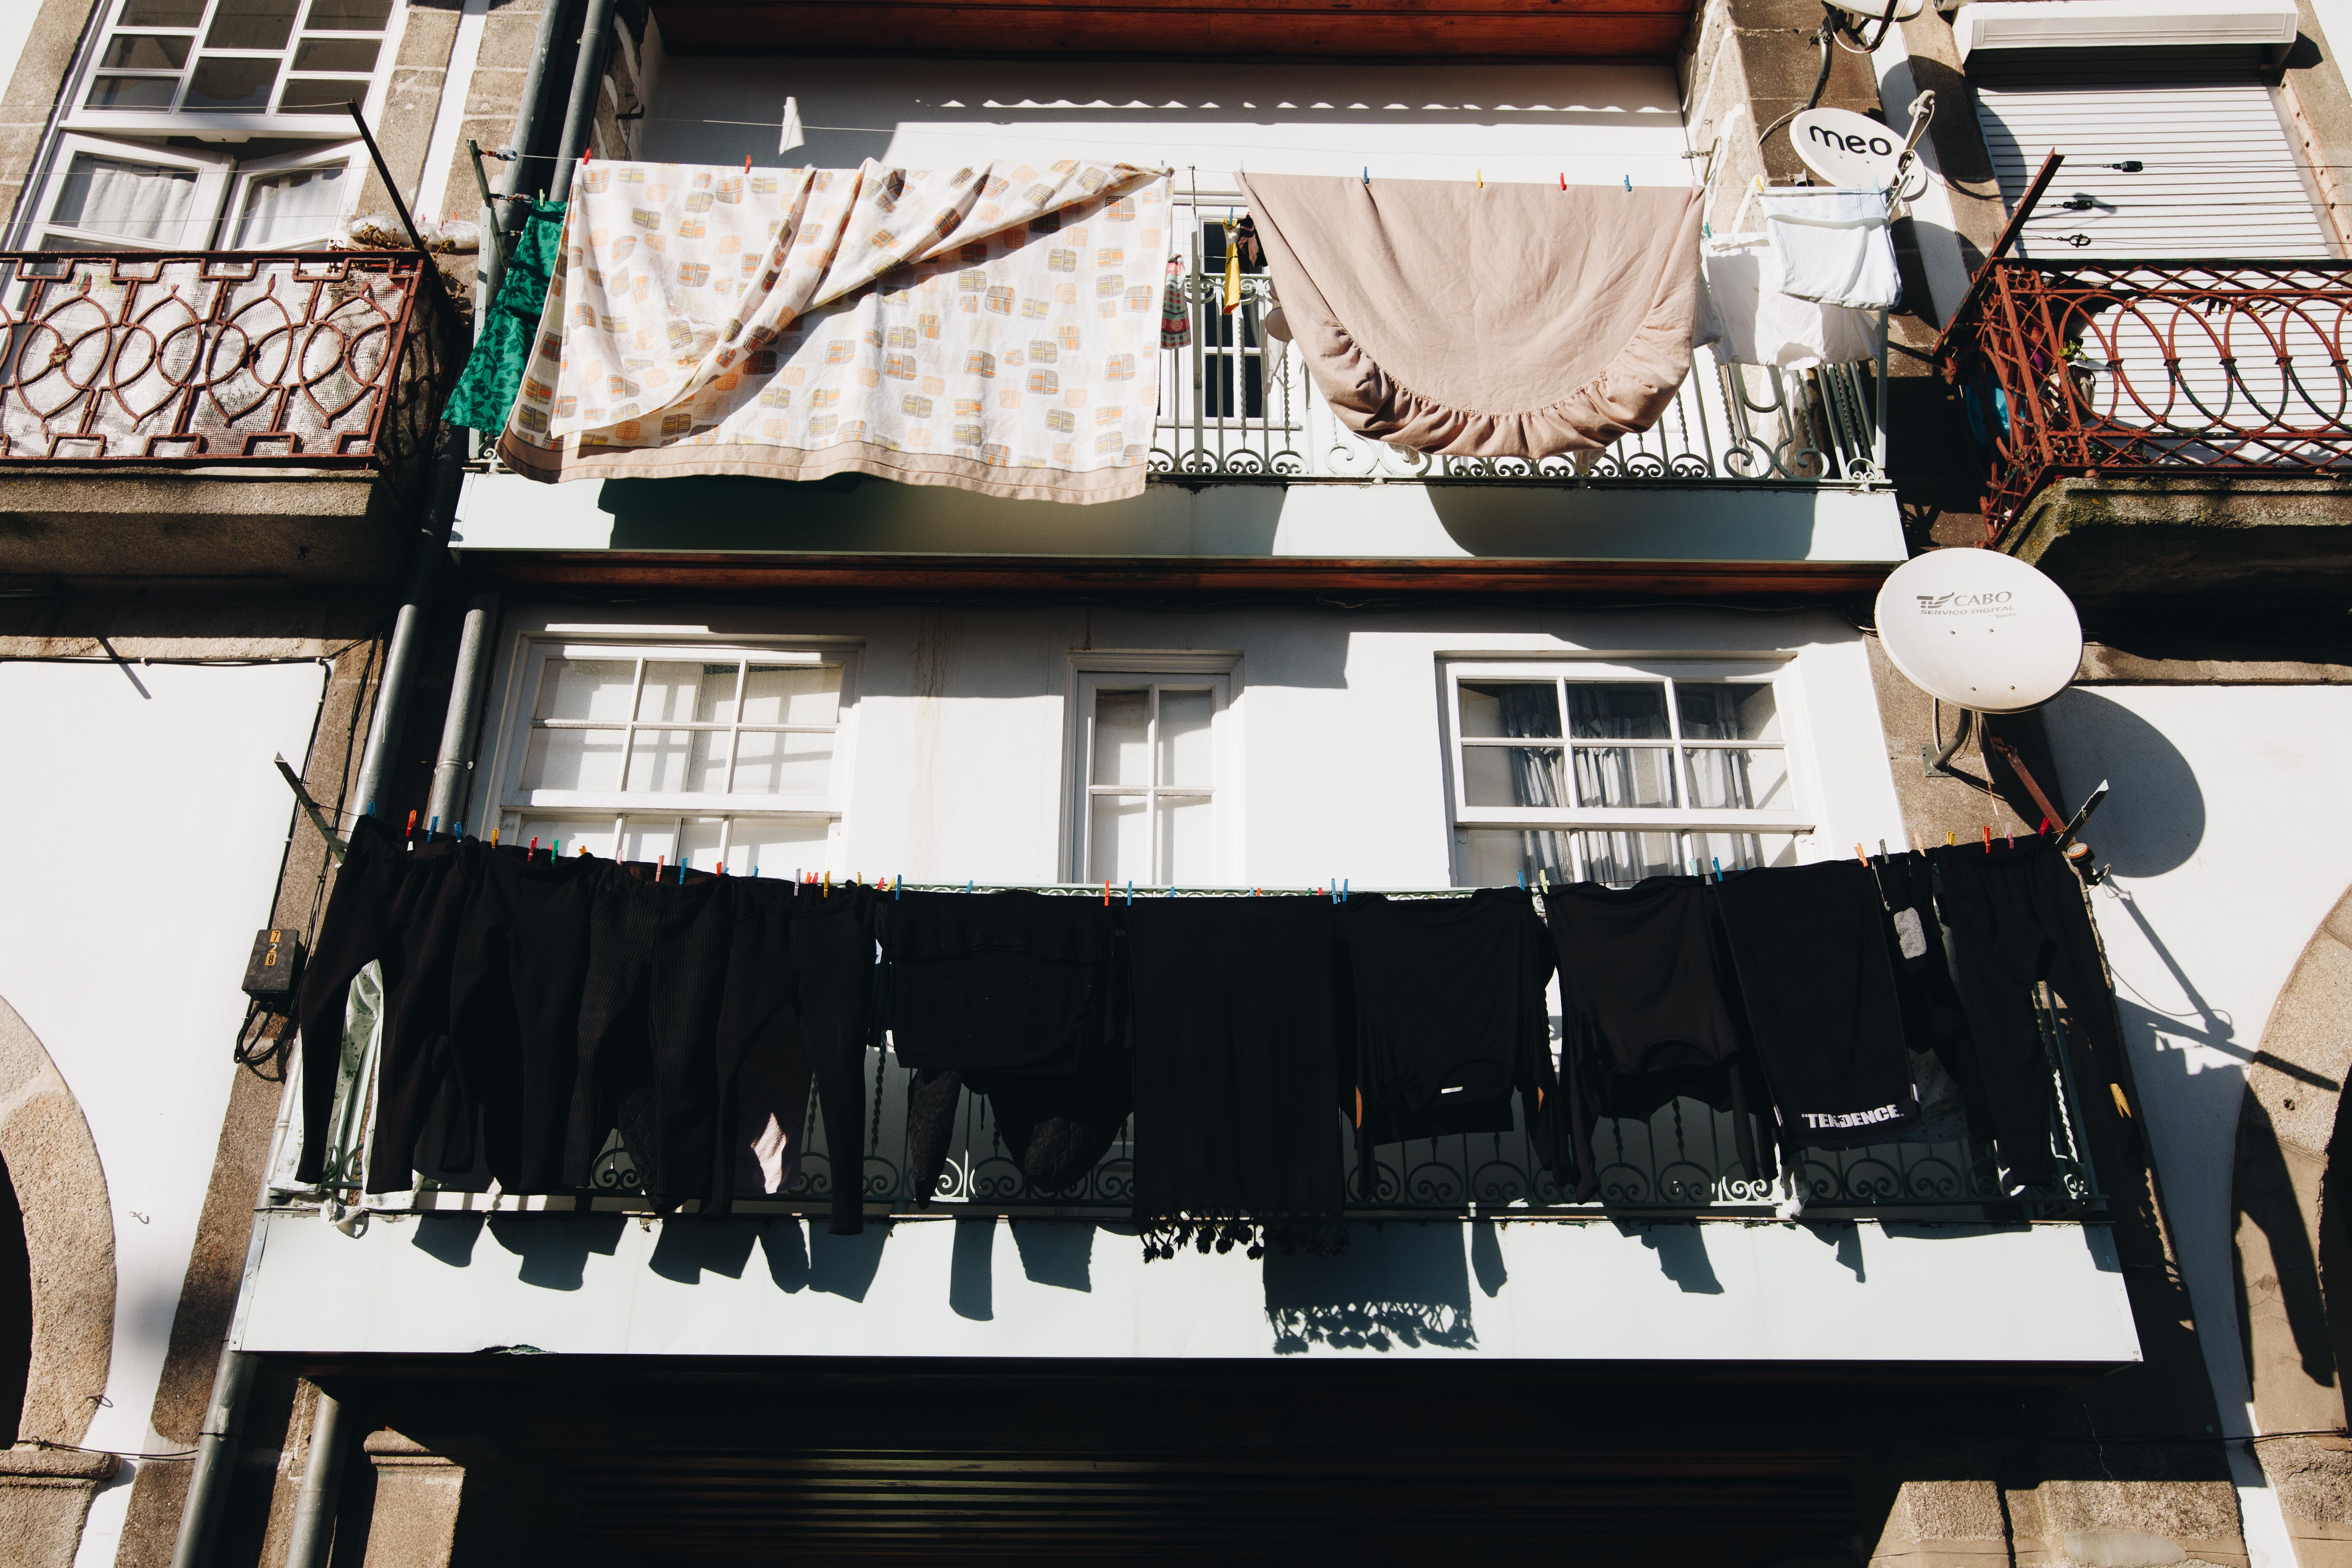 Close Up Photo of Black Clothes Hanged Outside Window